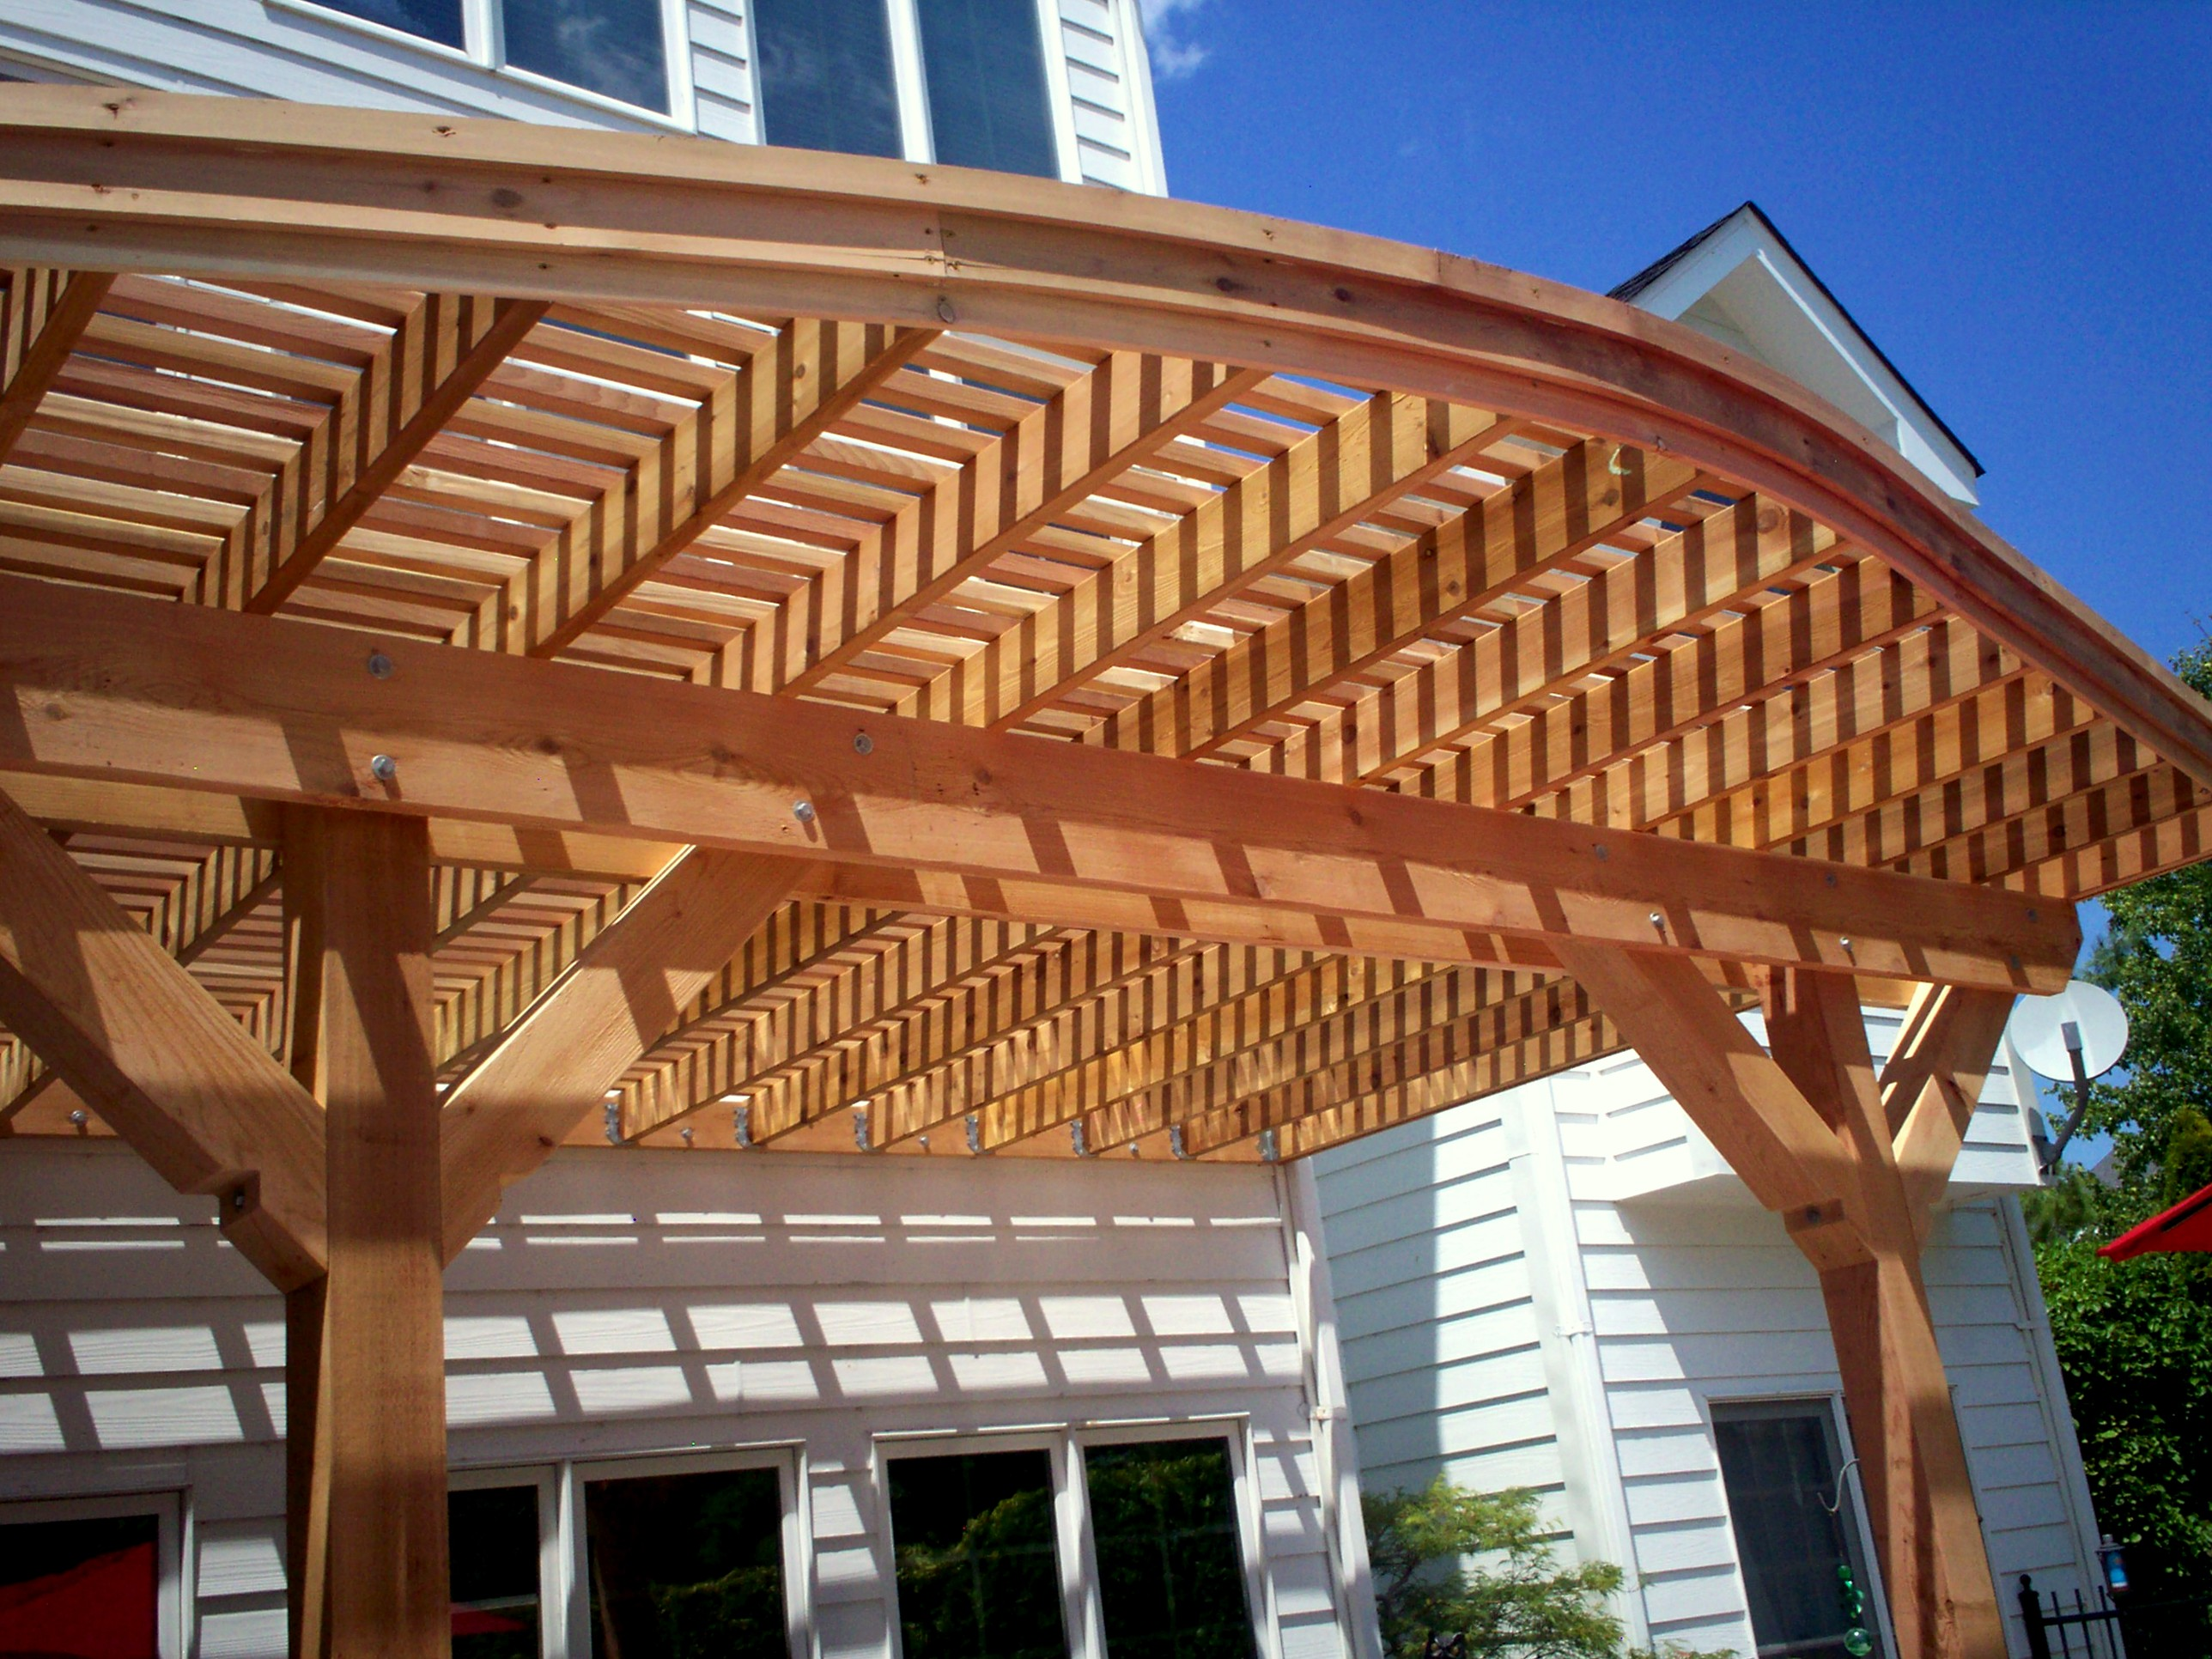 Aesthetic Decks, Porches, Pergolas in St. Louis: Where design ...